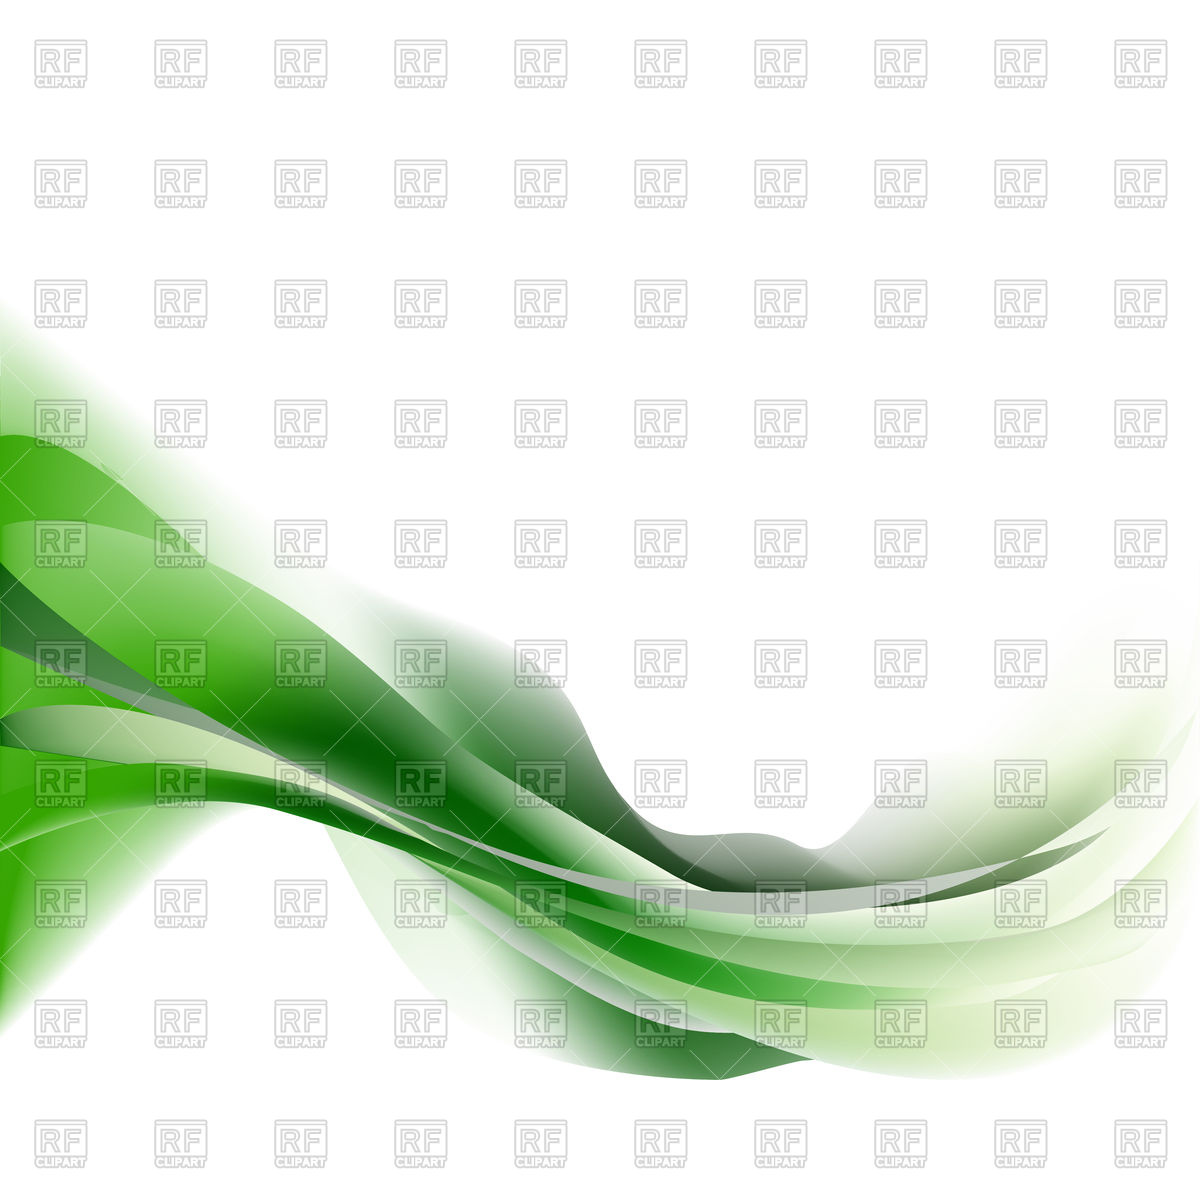 Green light wave isolated on a white background Vector Image.